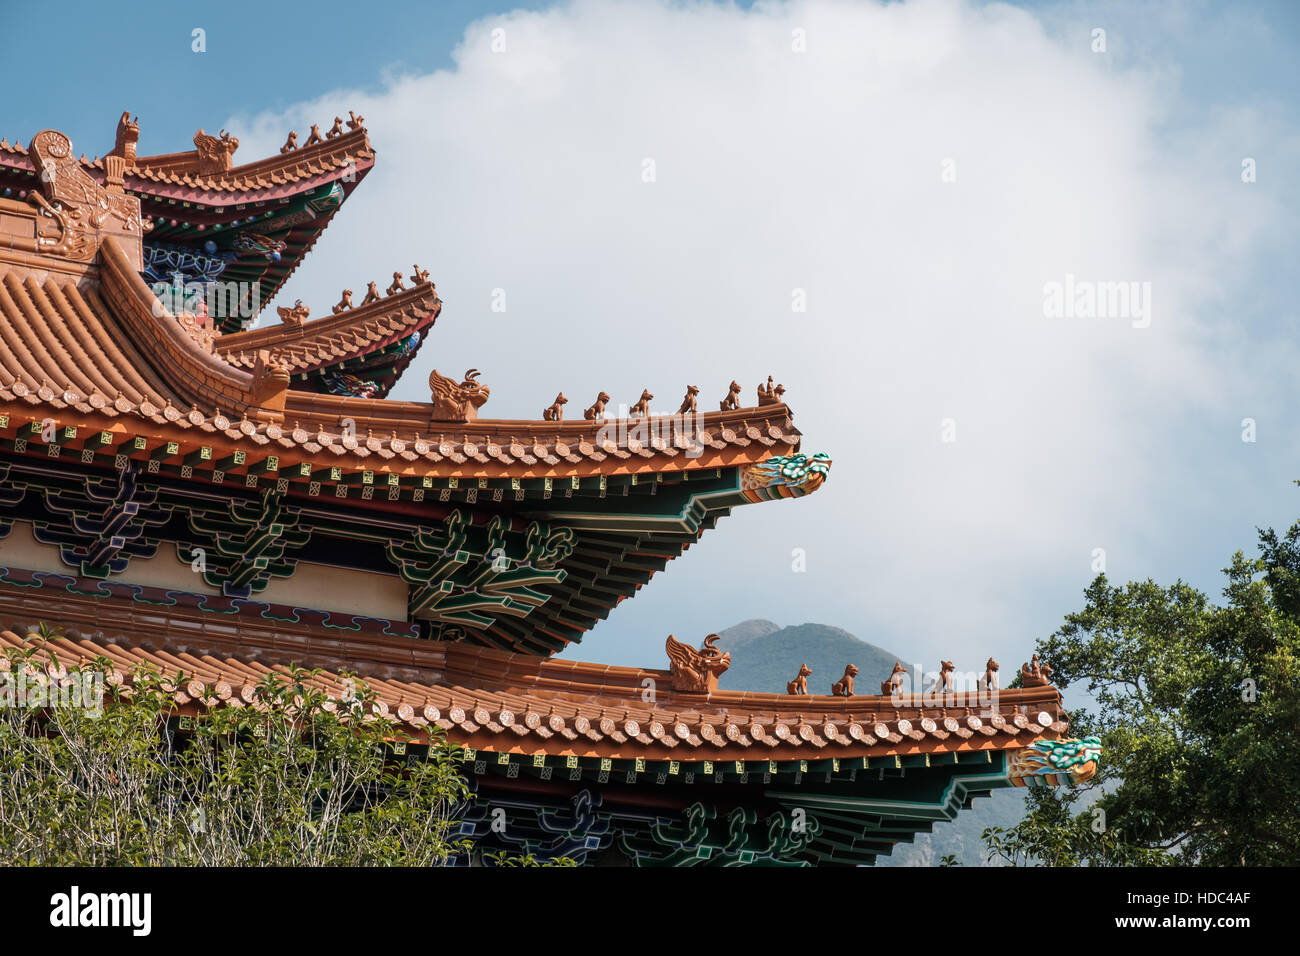 Part of the roof showing decorative creatures and animals at the main shrine Po Lin Monastery Lantau Island Hong - Stock Image